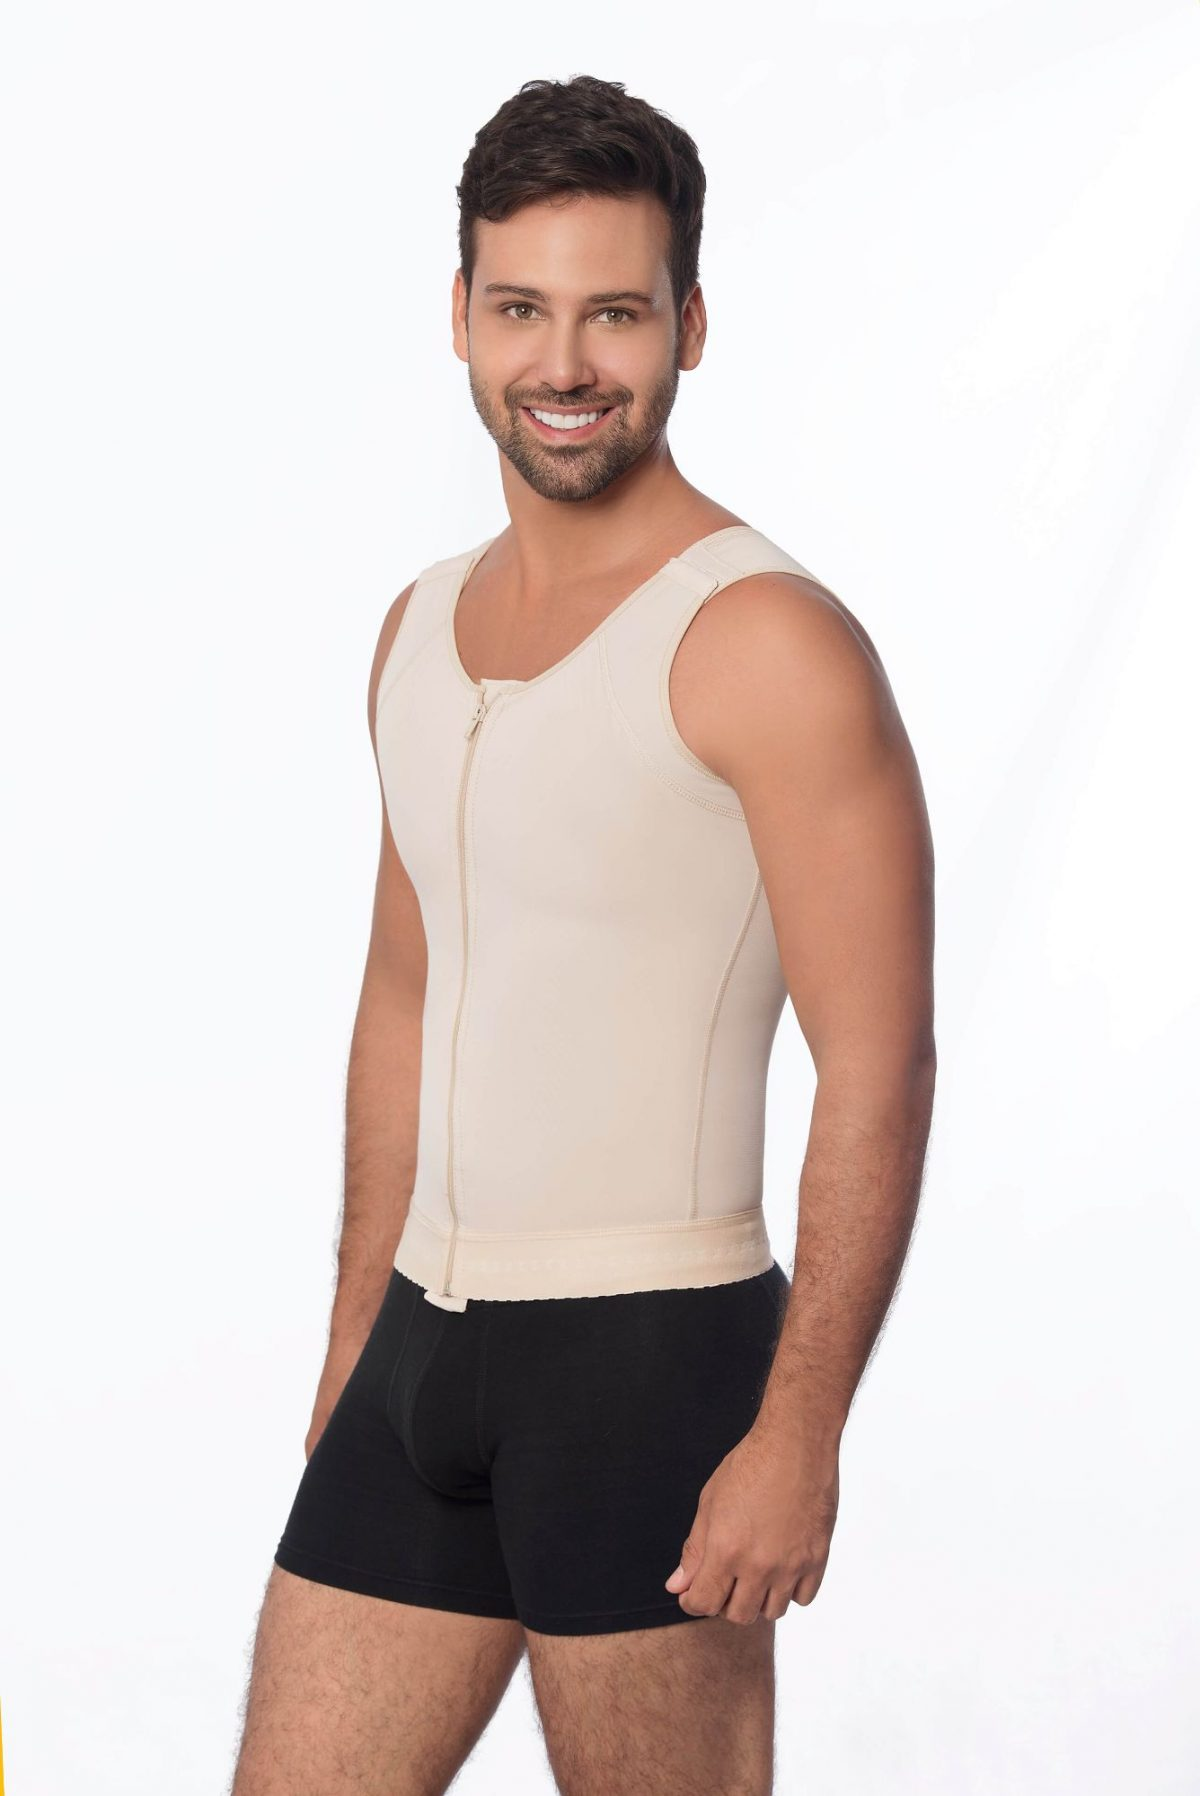 b61660375f Male Compression Vest - Contour Fajas